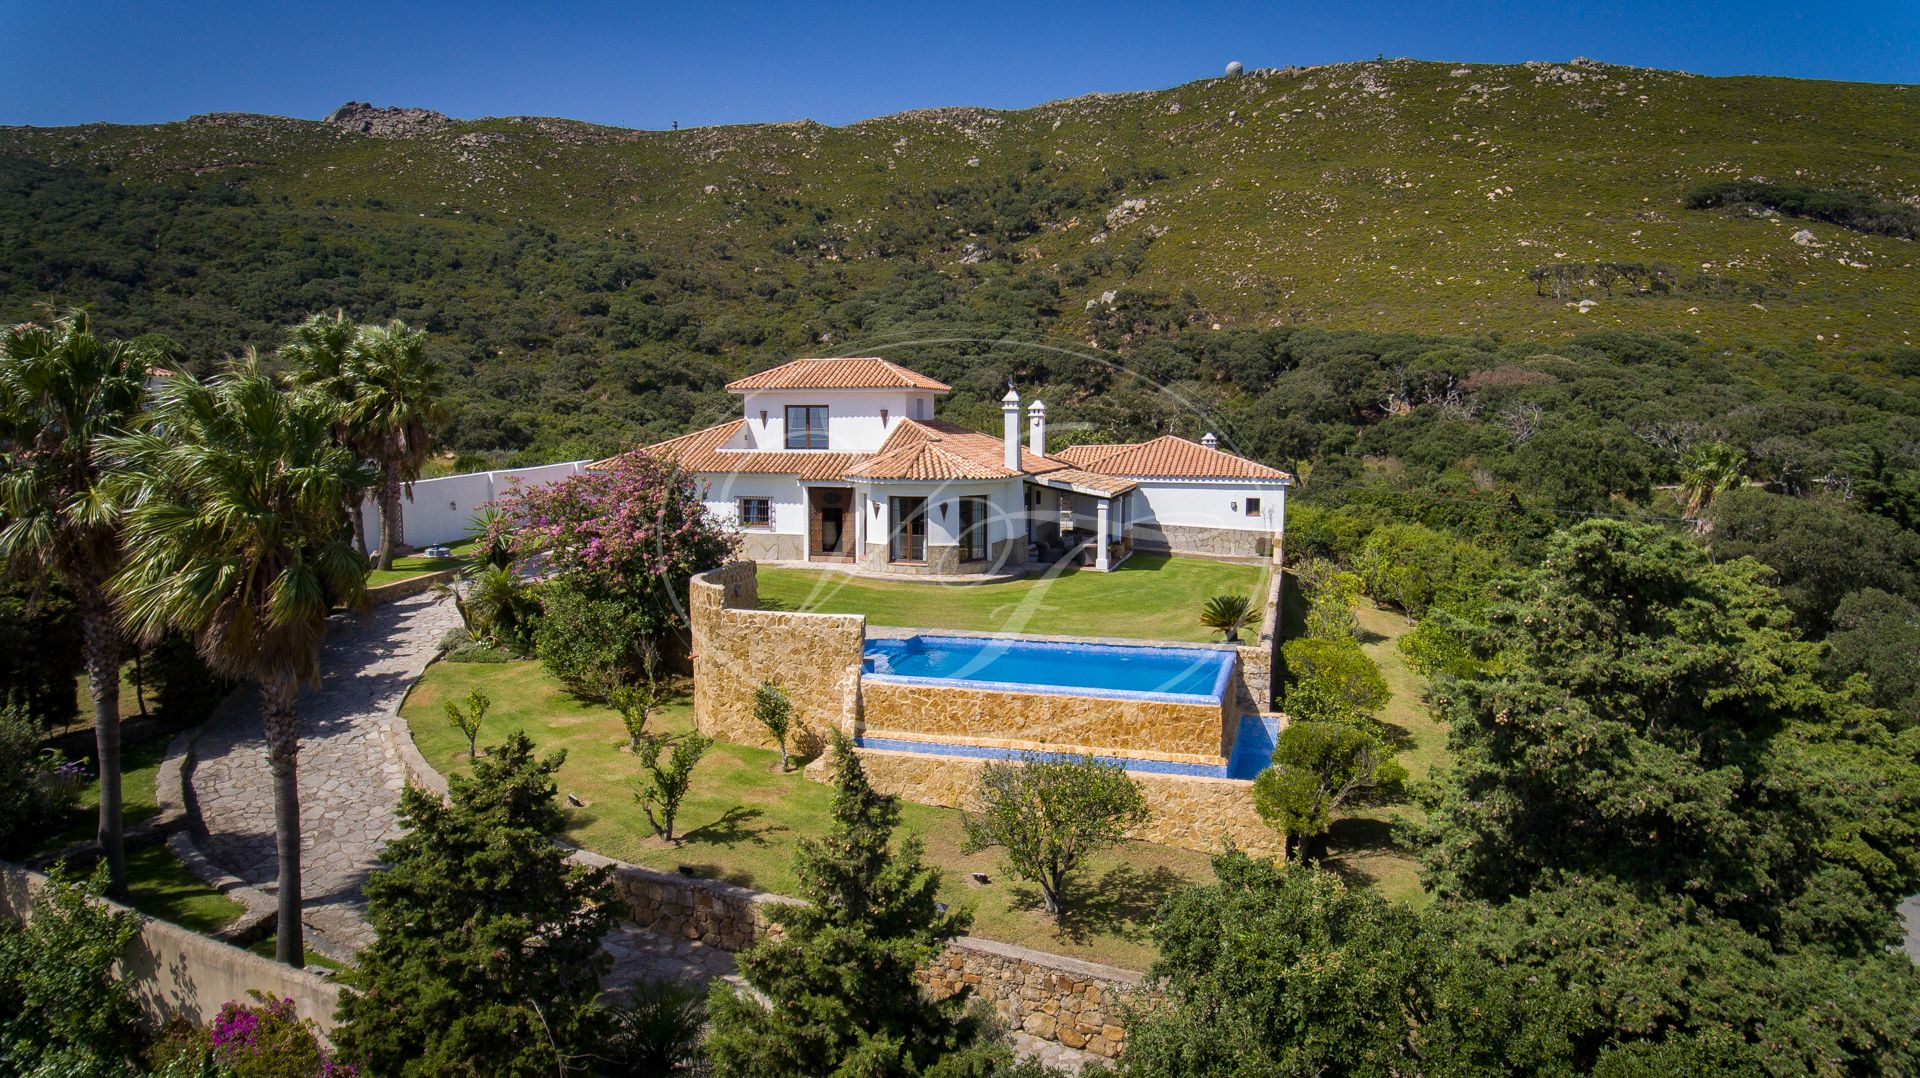 Villa for sale in Tarifa